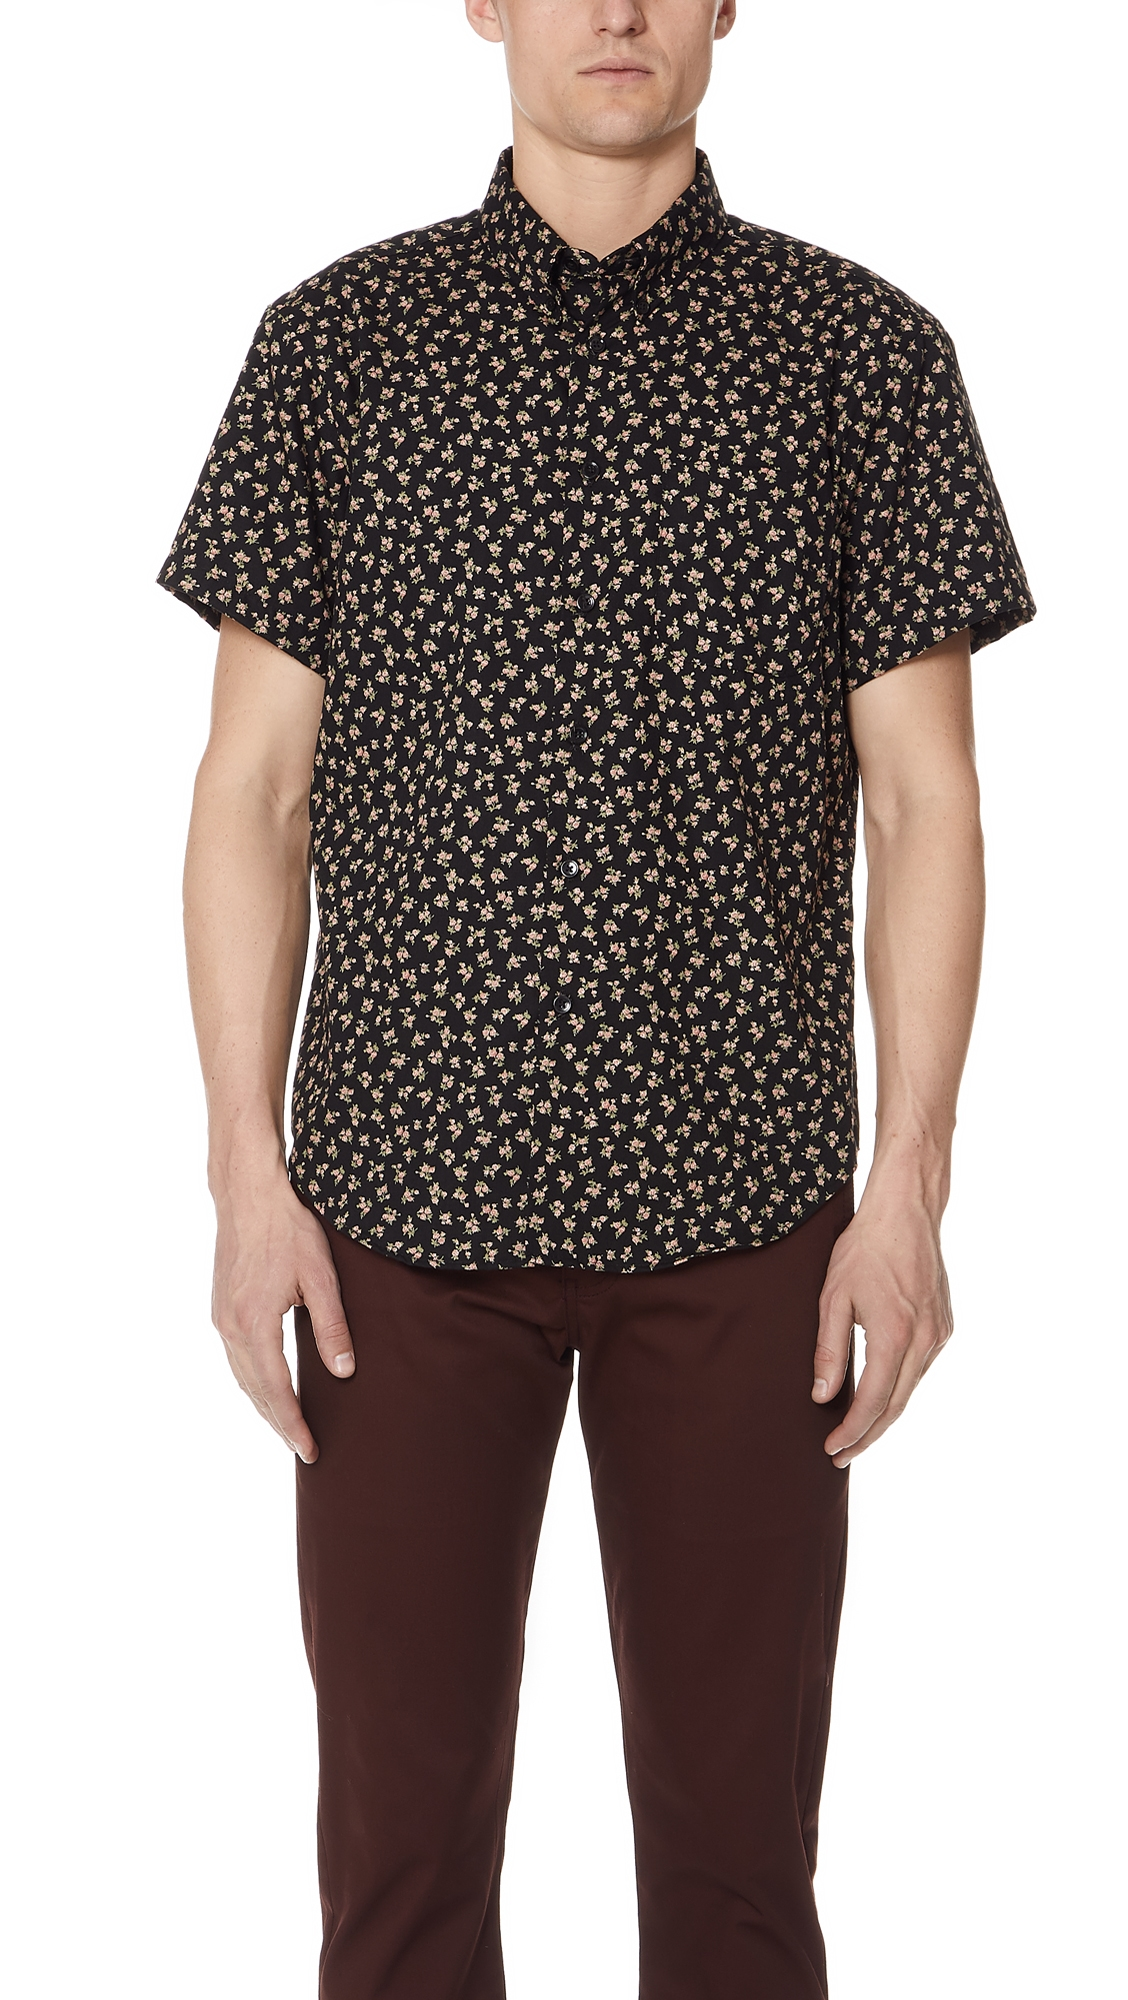 NAKED & FAMOUS VINTAGE FLOWERS SHIRT